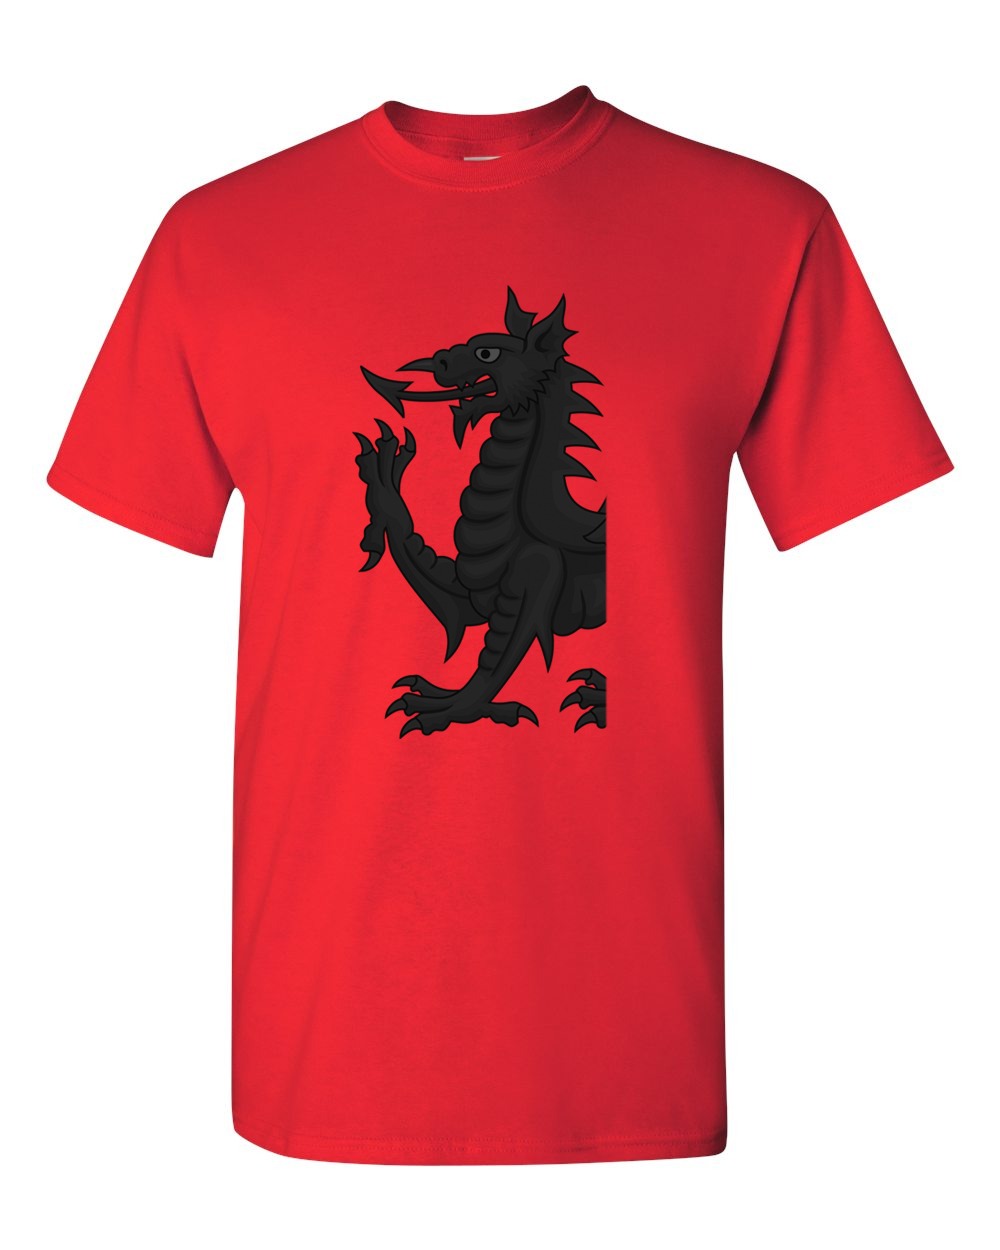 Buy Online Amazon Bits - Team Wales T-Shirt